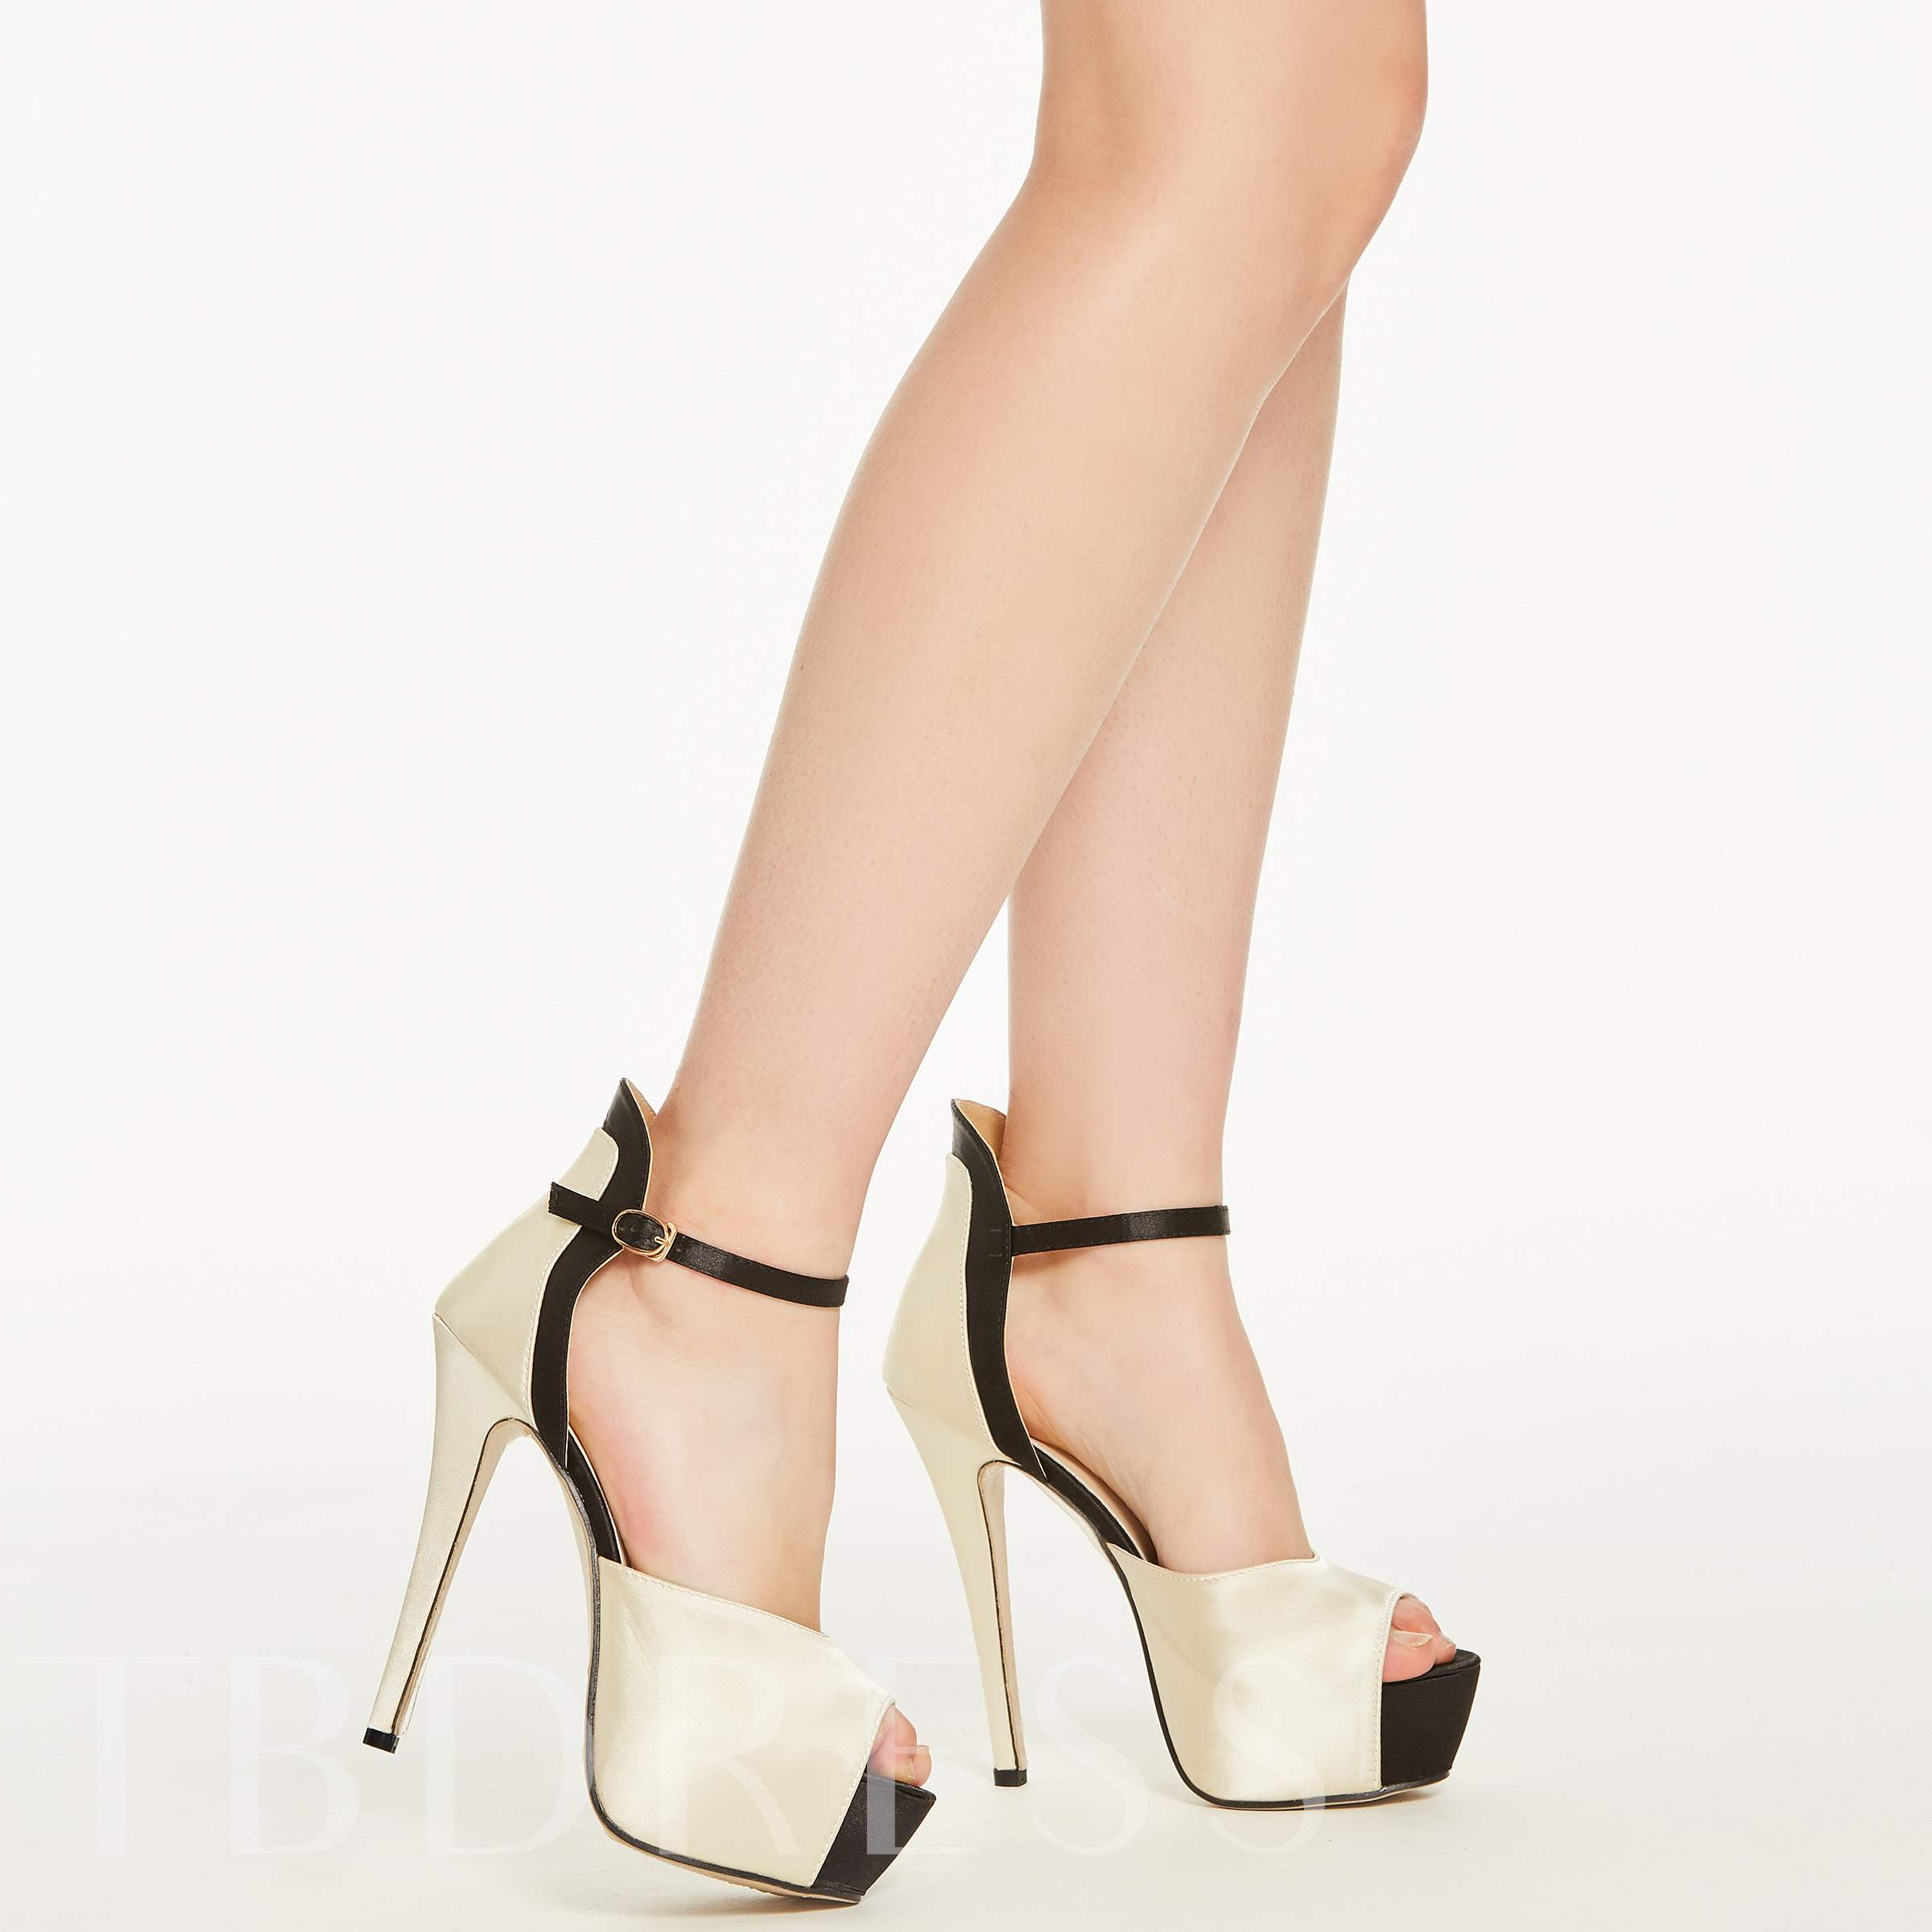 Formal Customized Peep Toe Stiletto Heel Women's Pumps